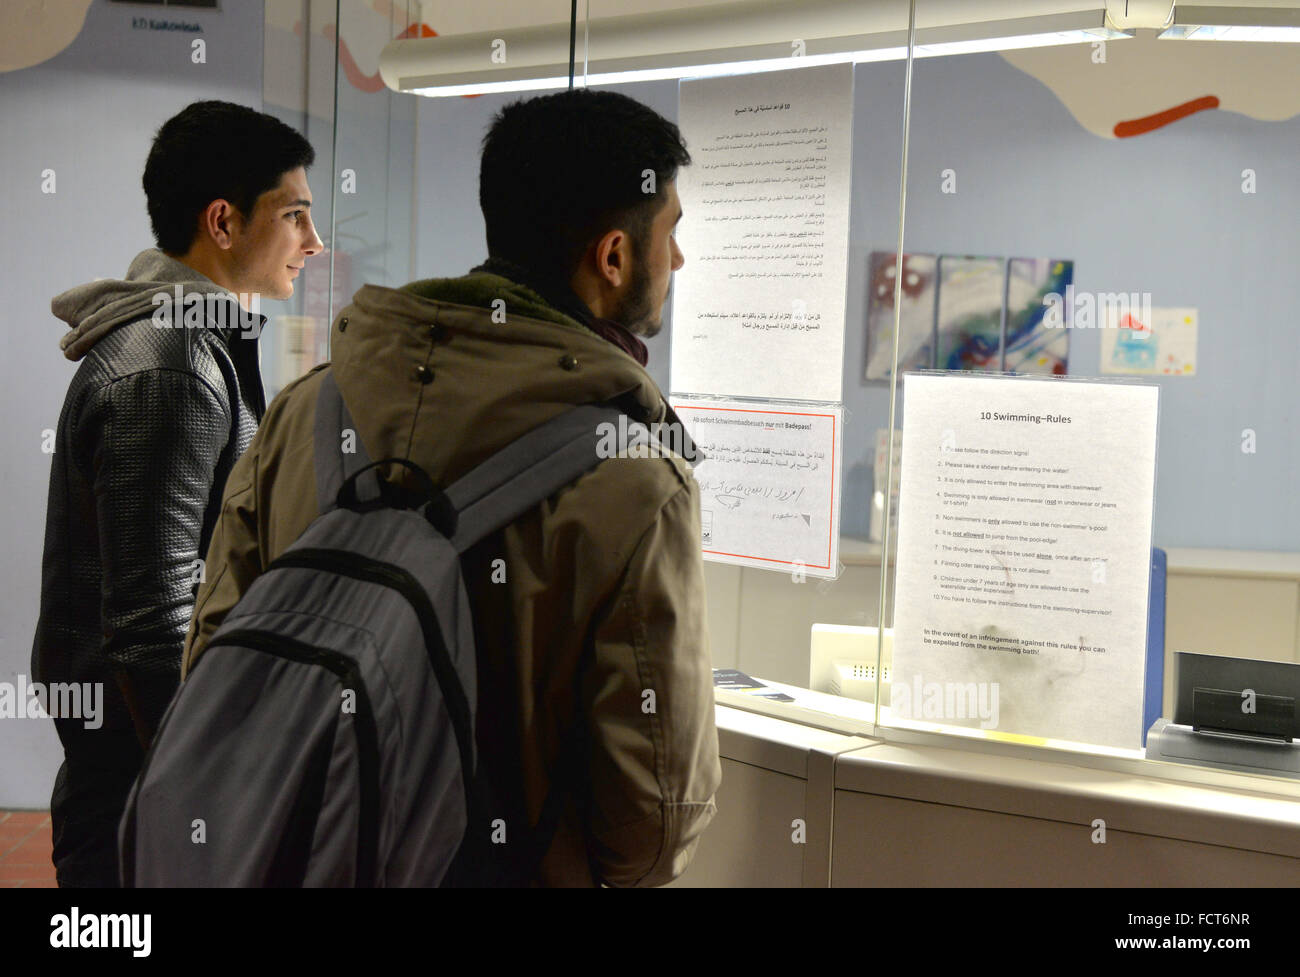 Hermeskeil, Germany. 21st Jan, 2016. Iranian refugees Mohsen and Ali (l) reading the pool rules written in German, Stock Photo